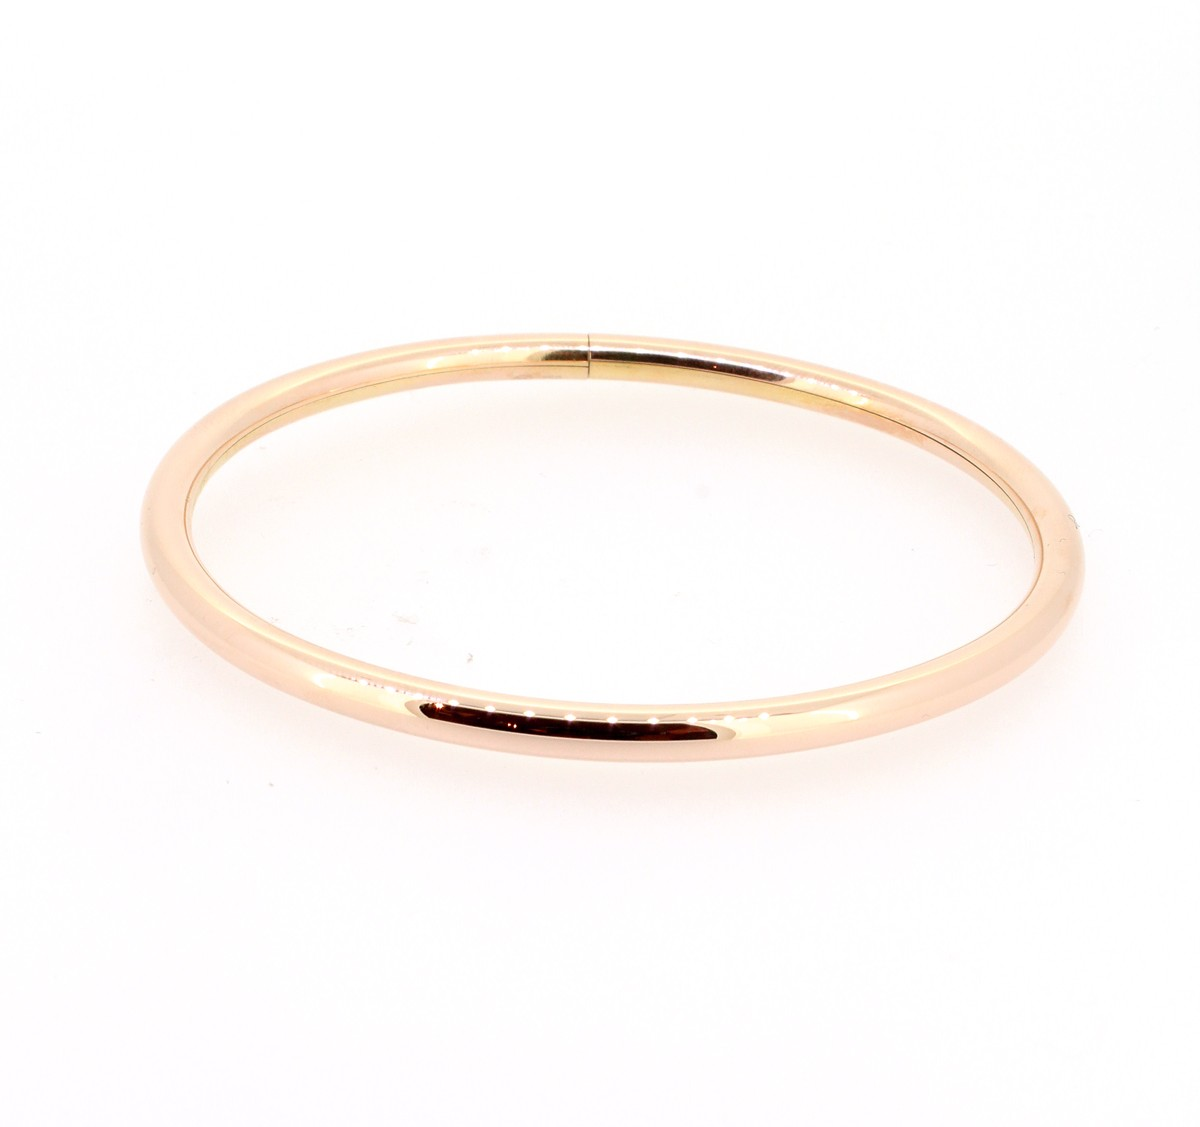 Armreif 18ct Rotgold 4mm - Emil Brenk - 0/20334/M/L/750r